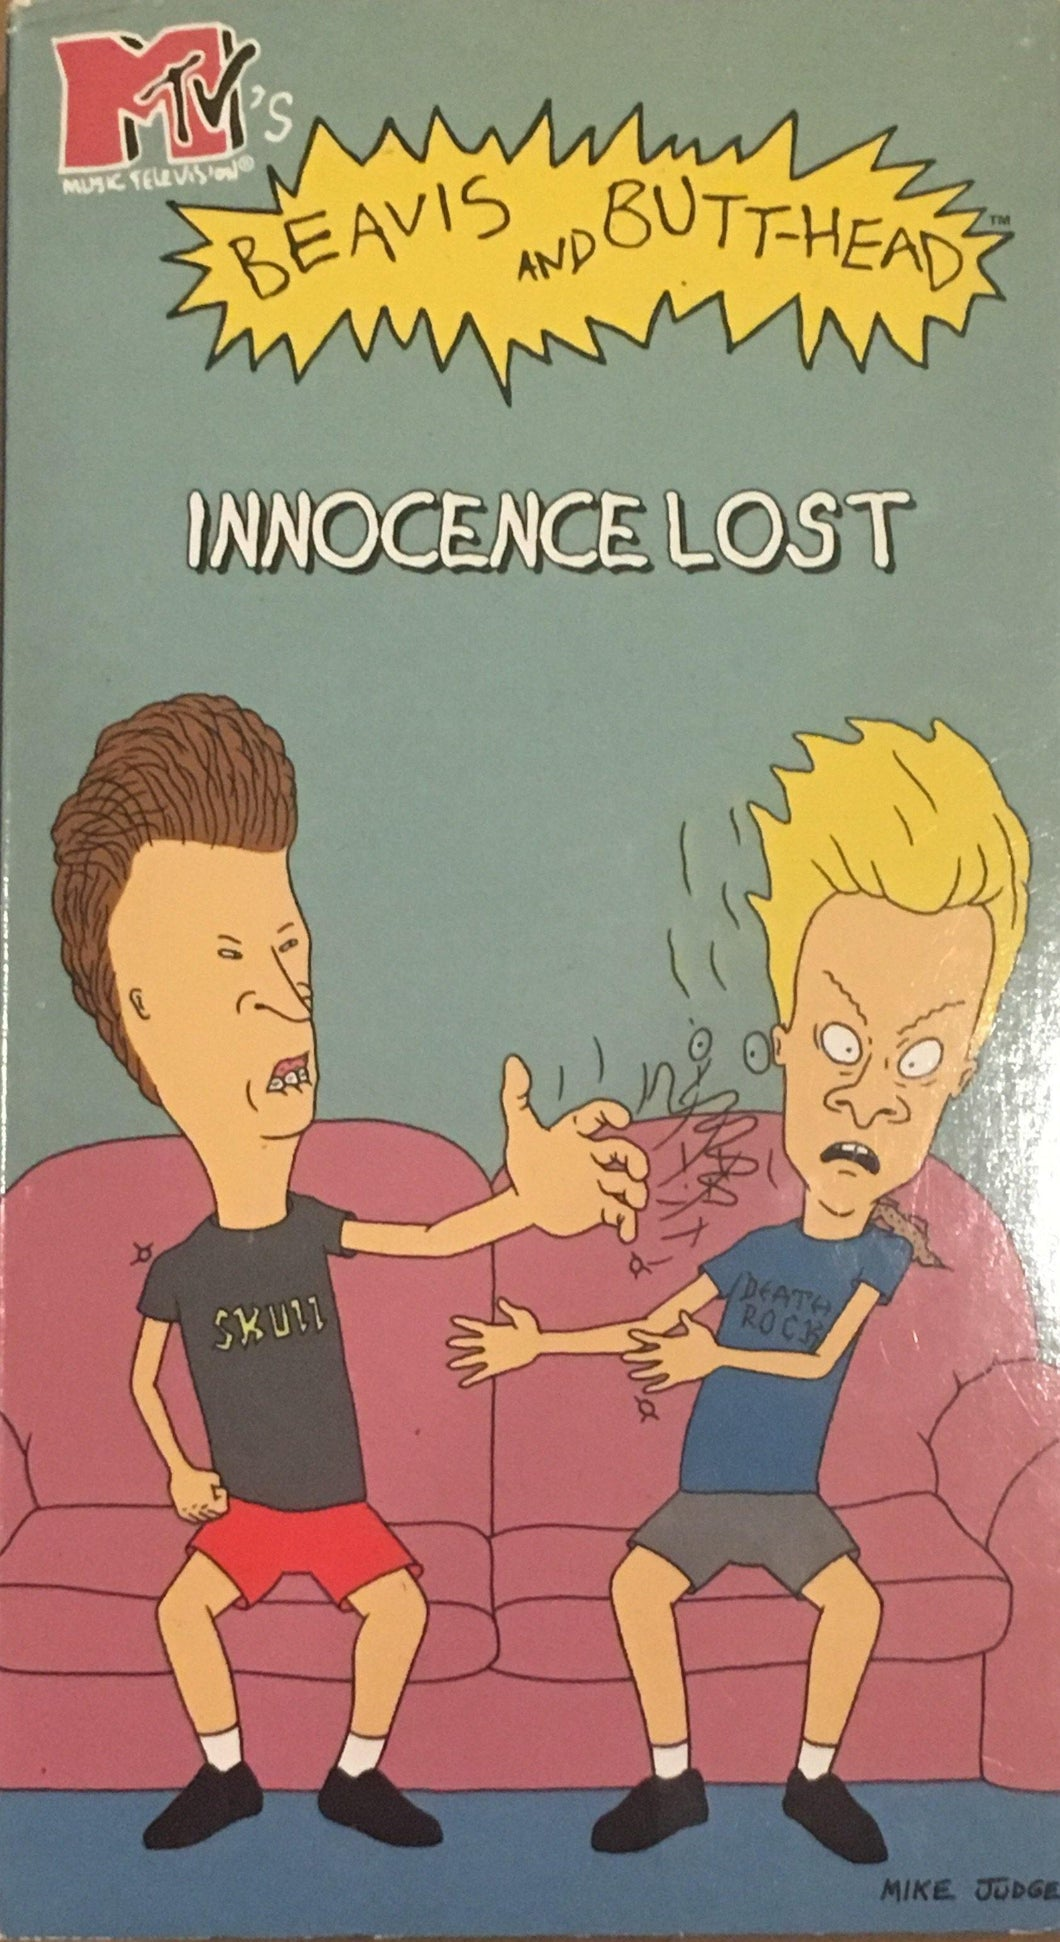 Beavis And Butthead Innocence Lost VHS